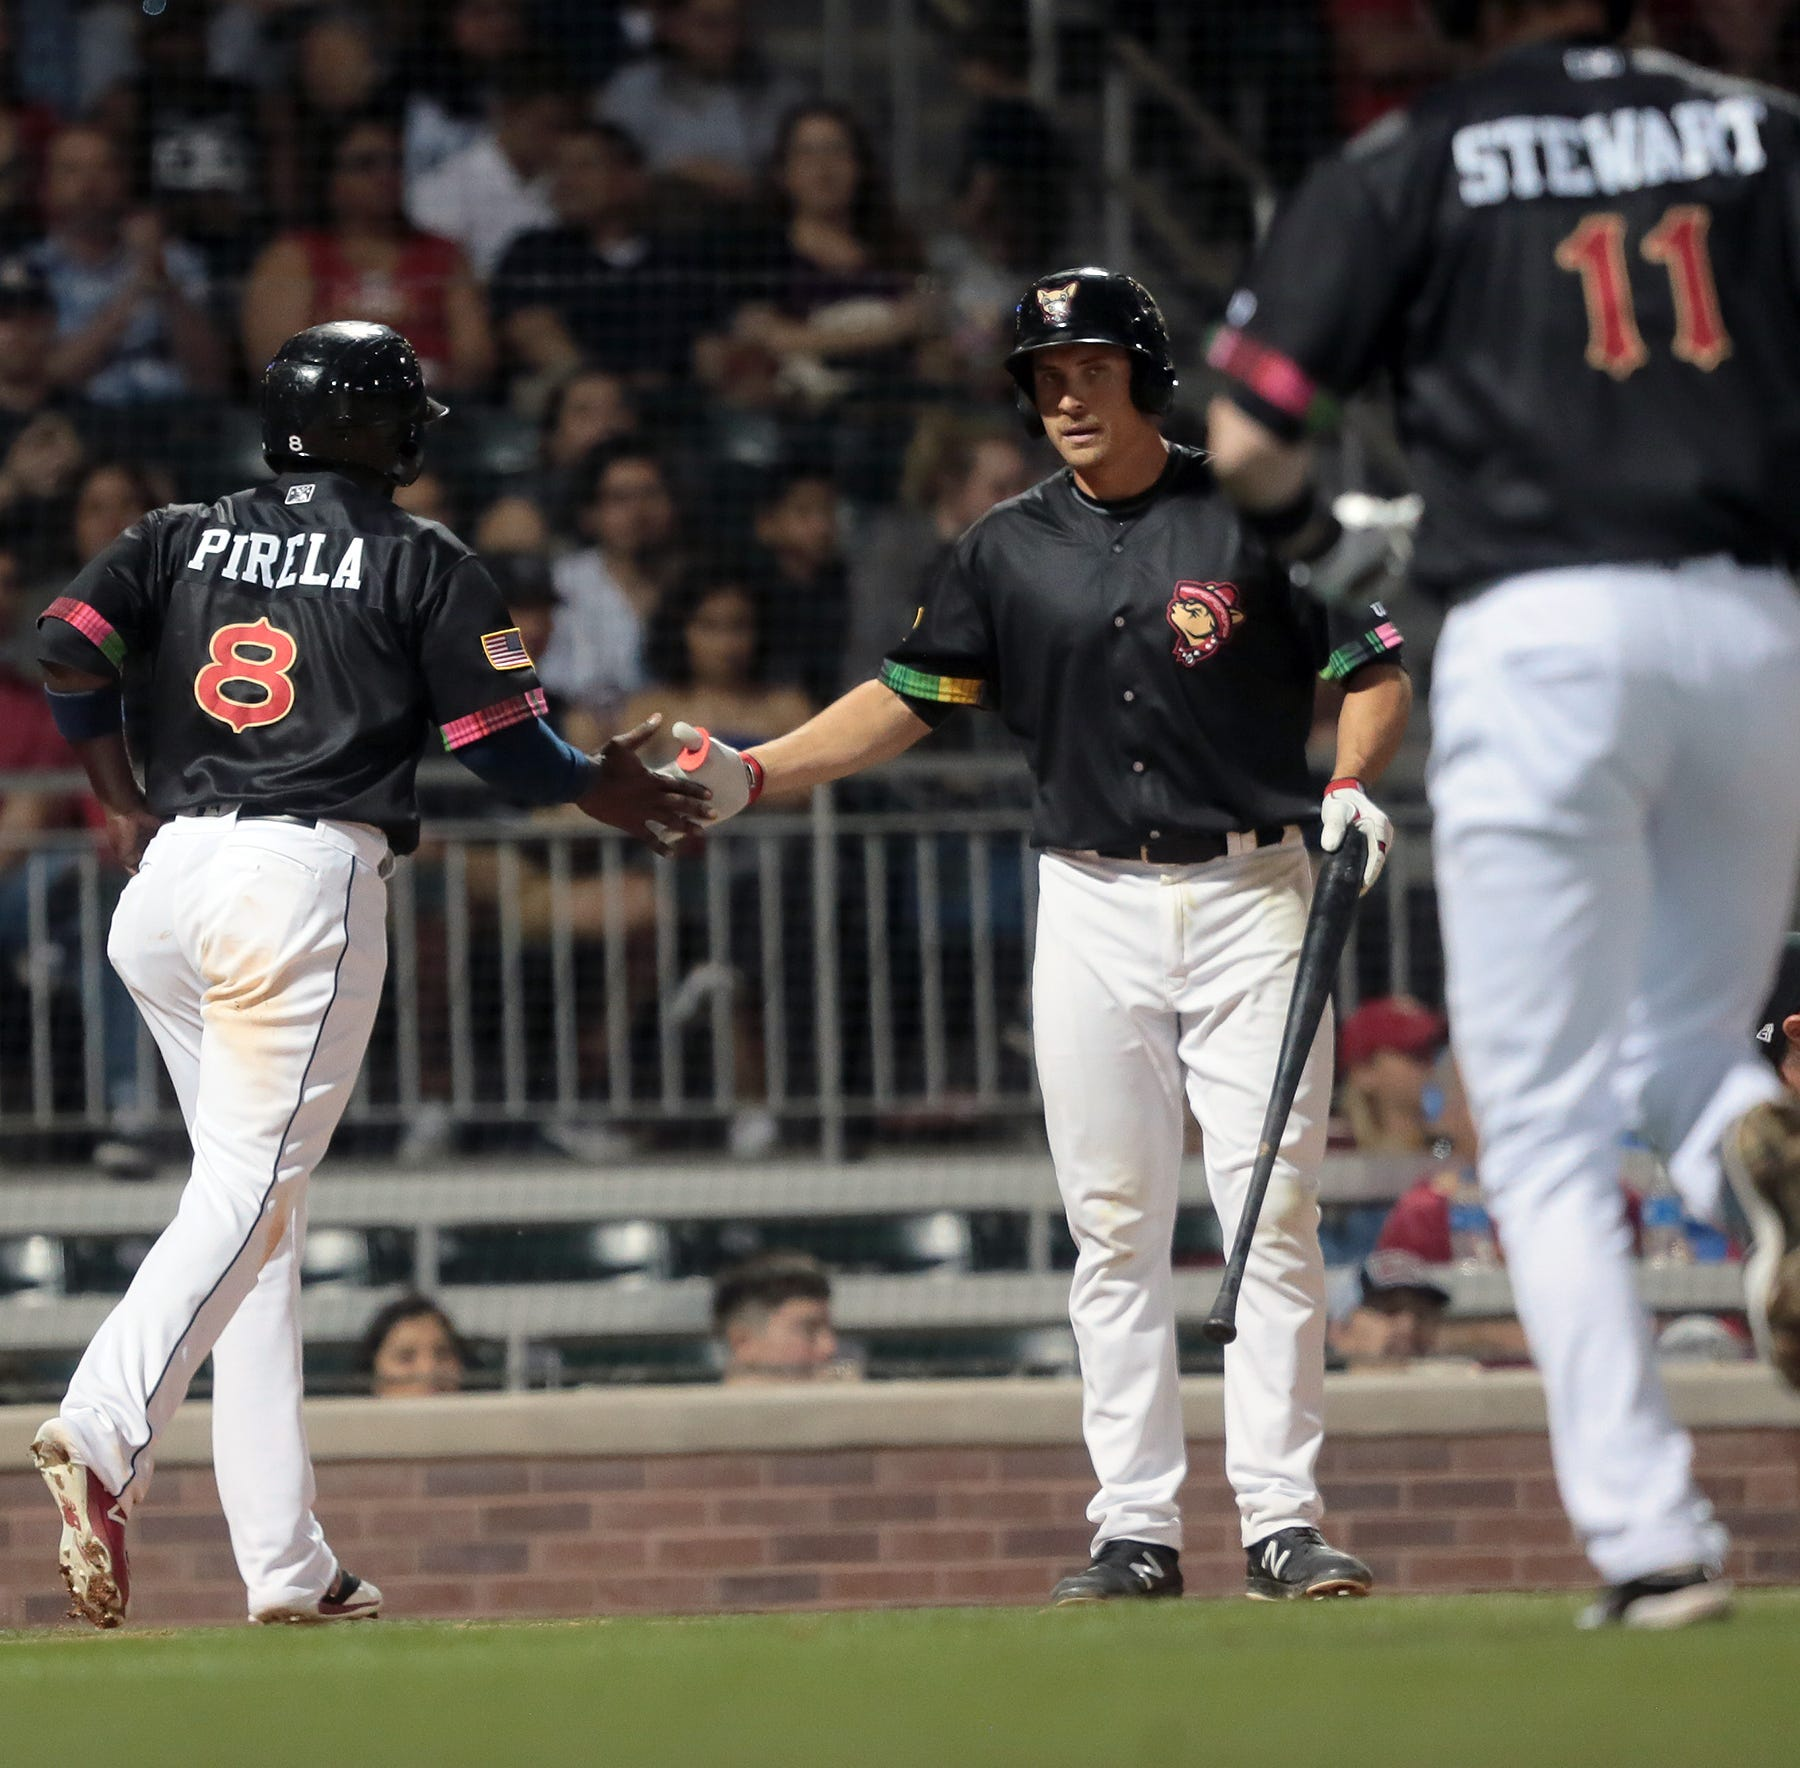 Chihuahuas return home for quick homestand vs. Reno